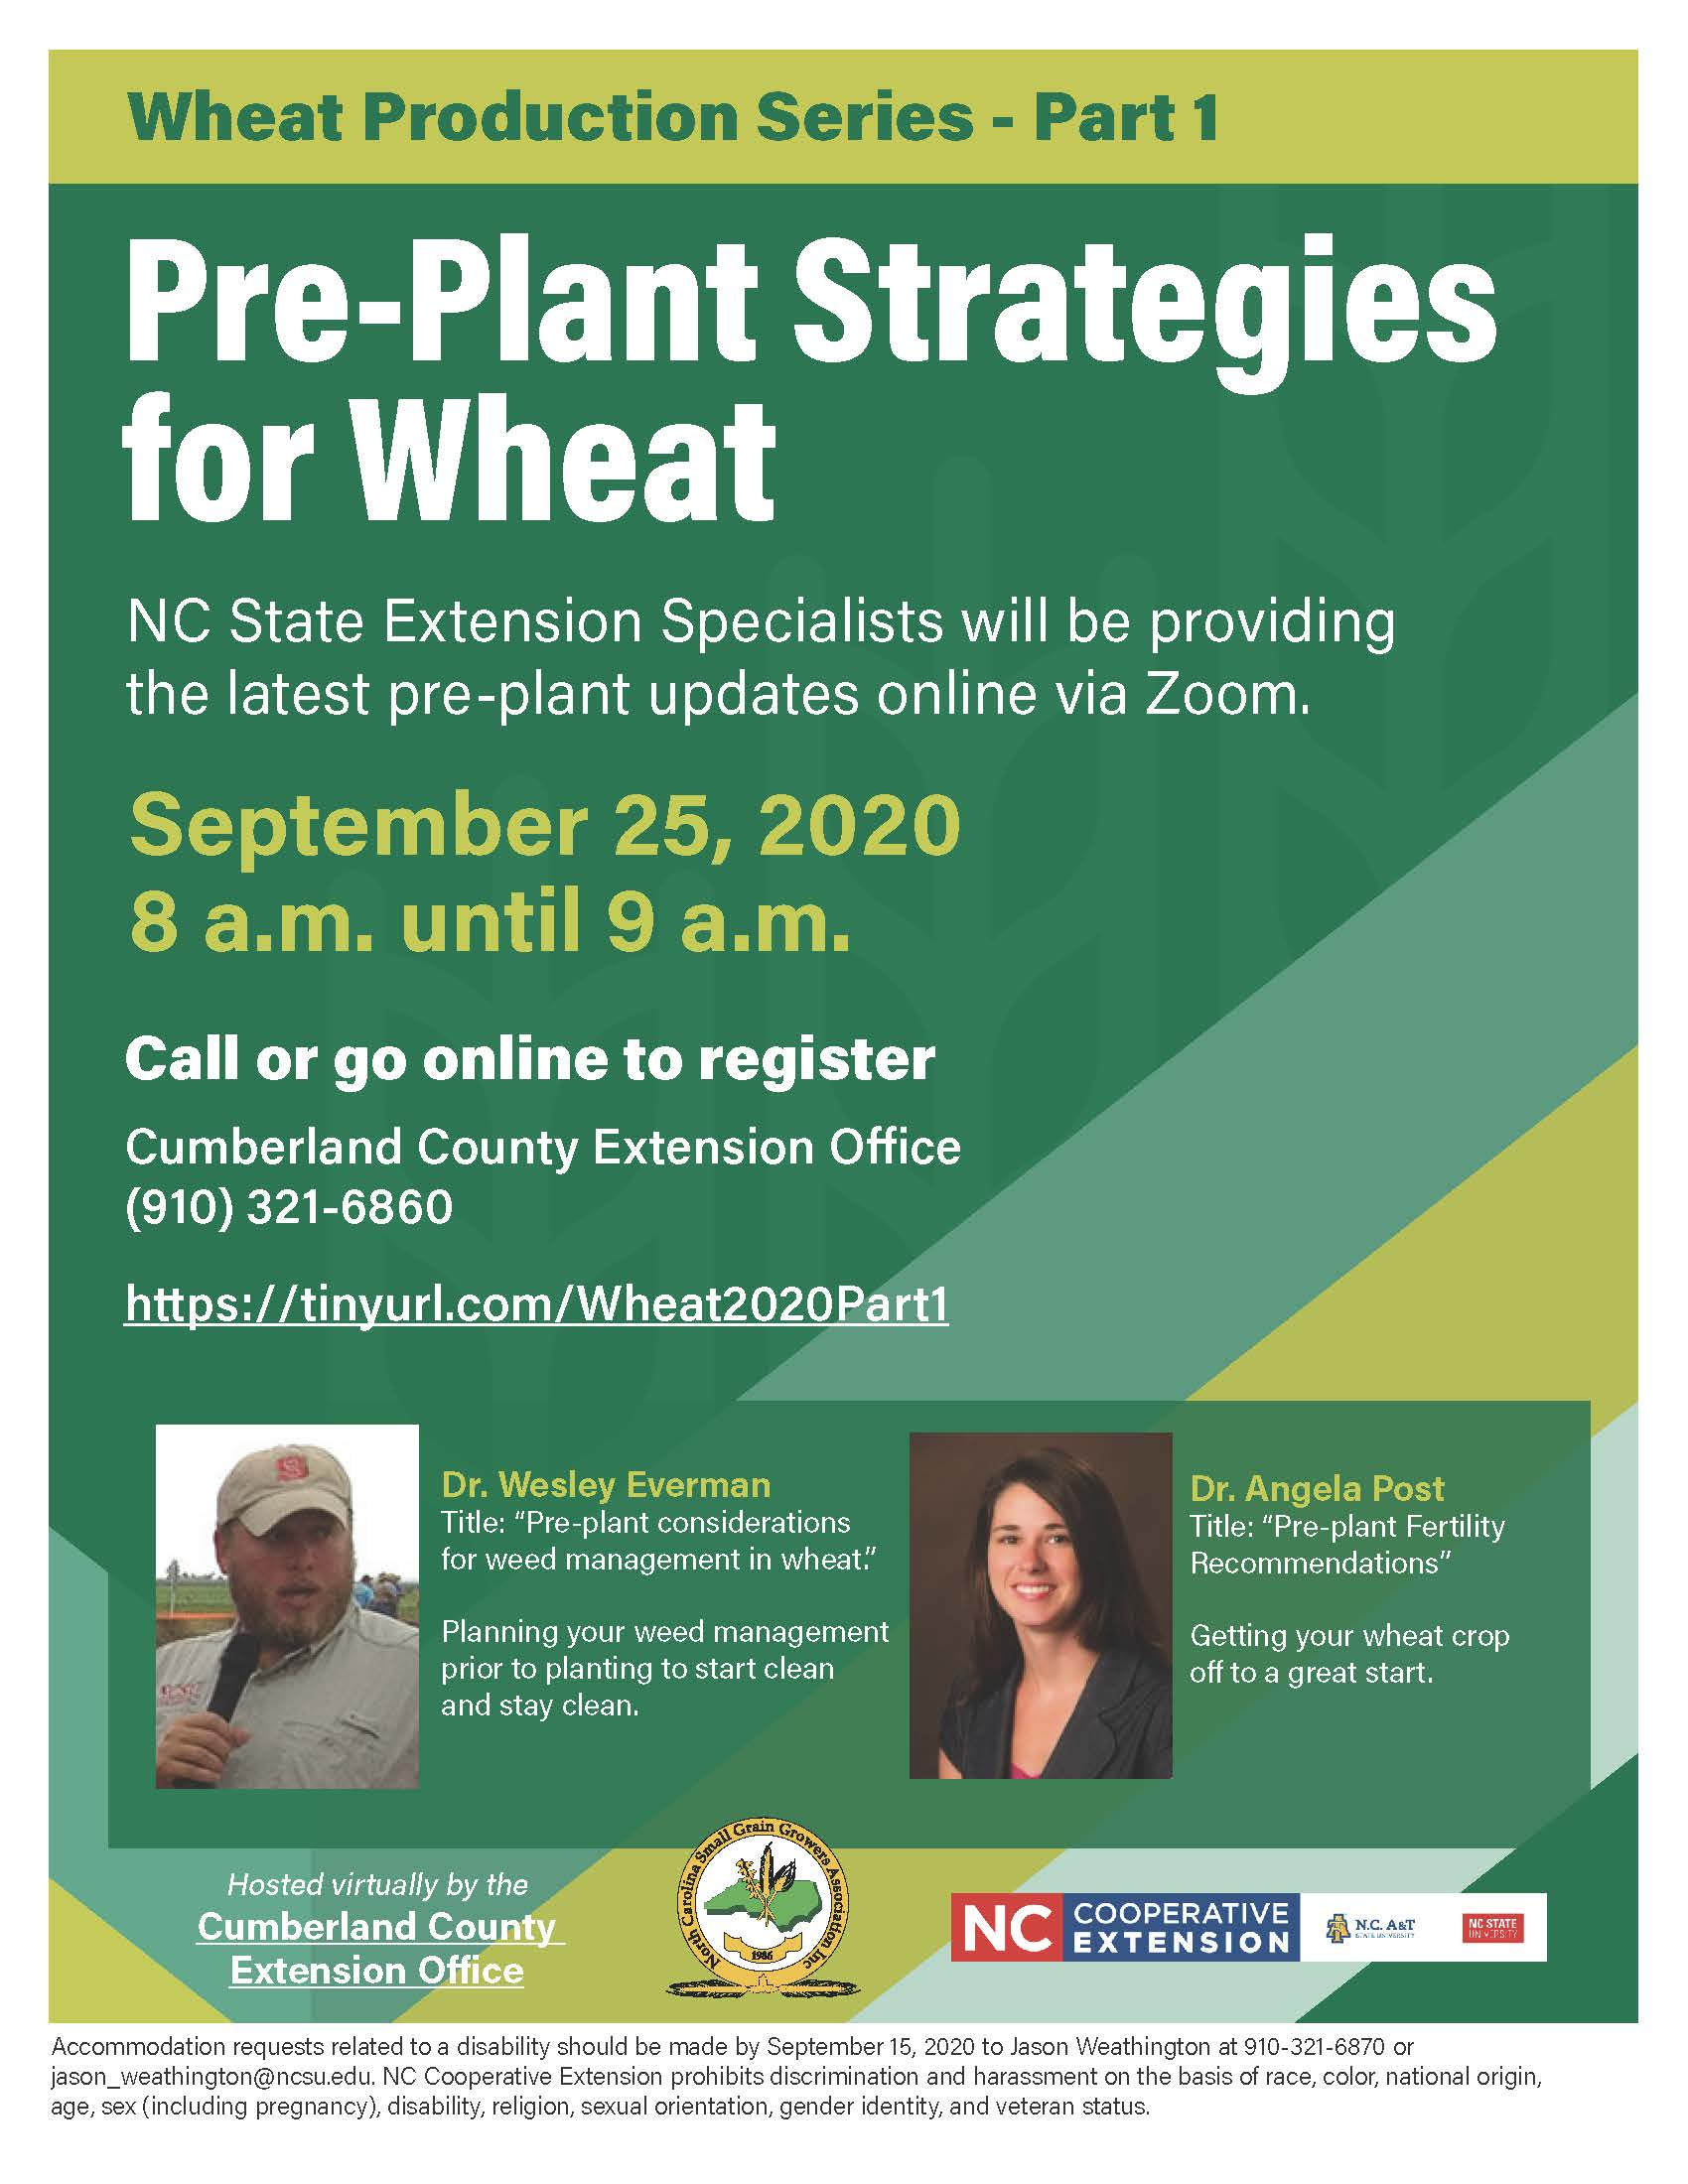 Pre-Plant Strategies for Wheat